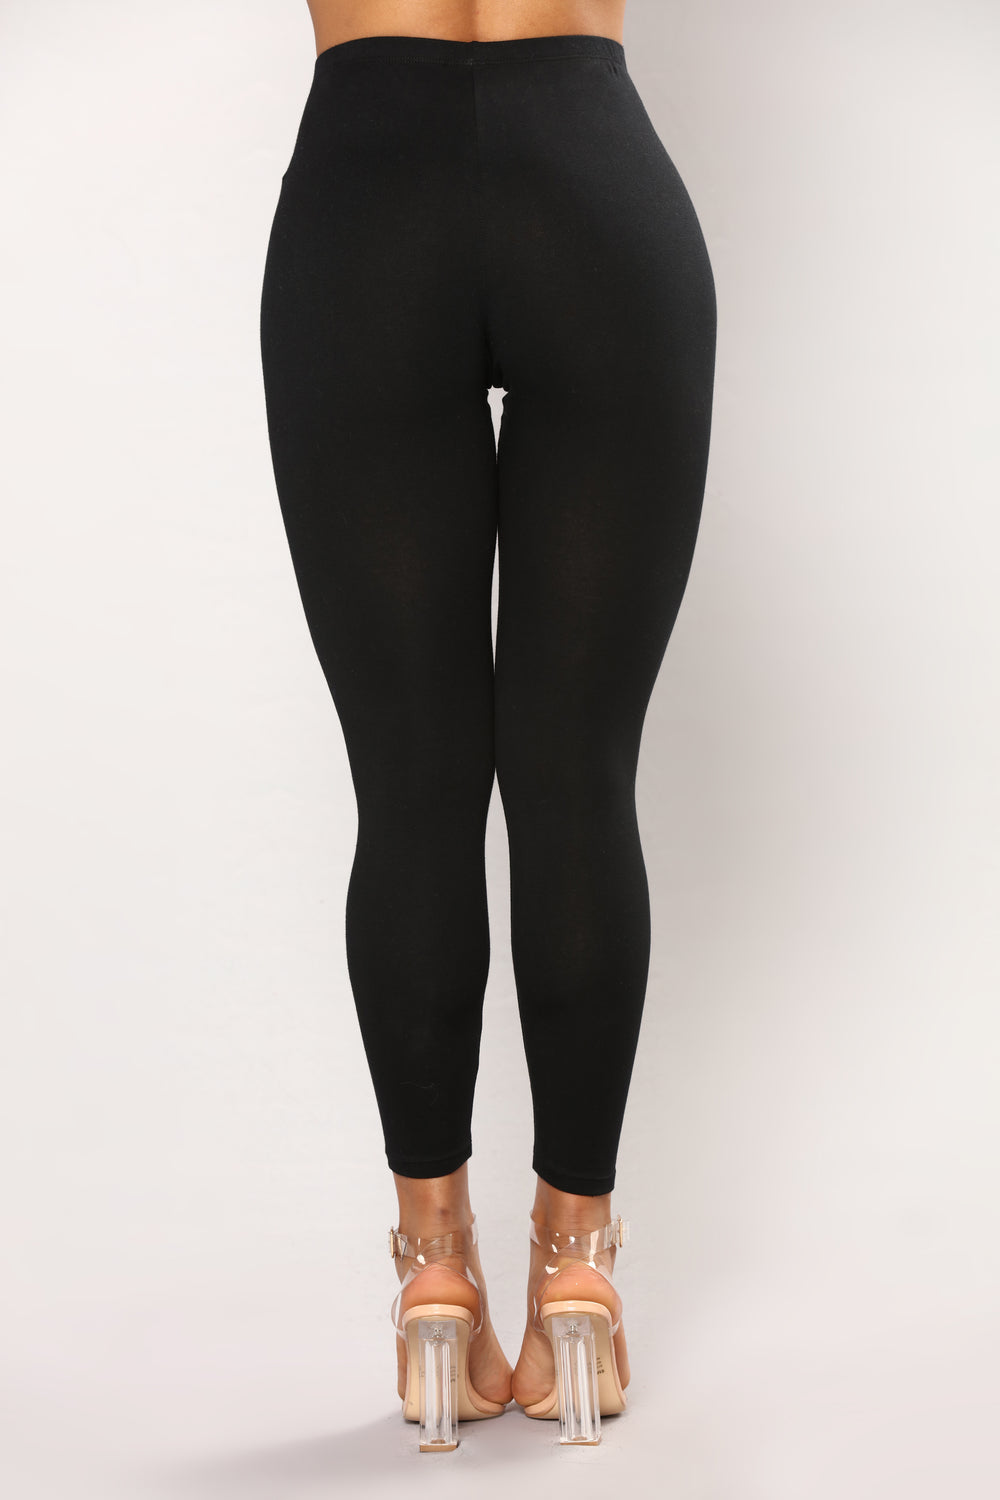 Almost Daily Layering Leggings - Black